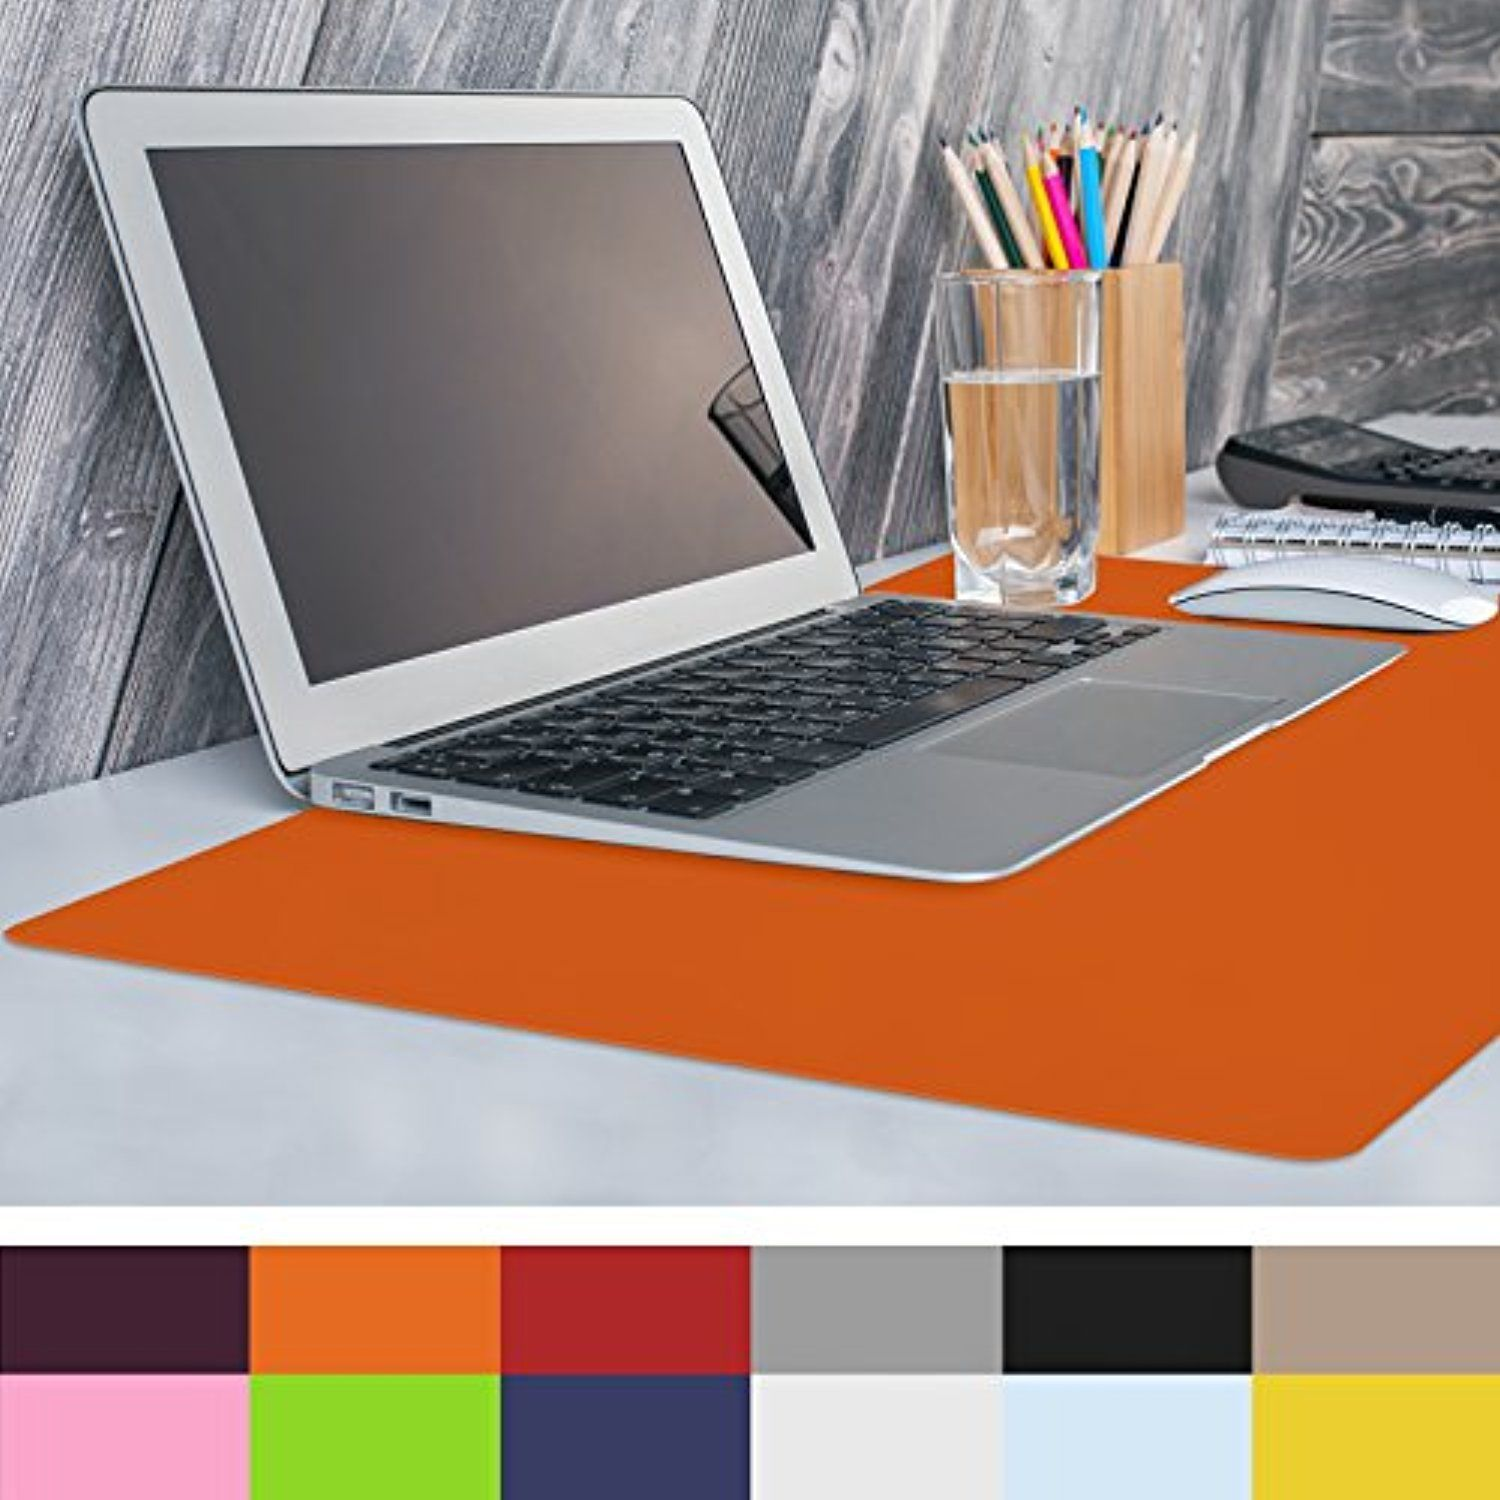 Casa Pura Non Slip Orange Desk Mat 20 X 26 1 6 X2 Pvc Homedcor Clear Desk Office Supplies Desk Accessories Desk Mat